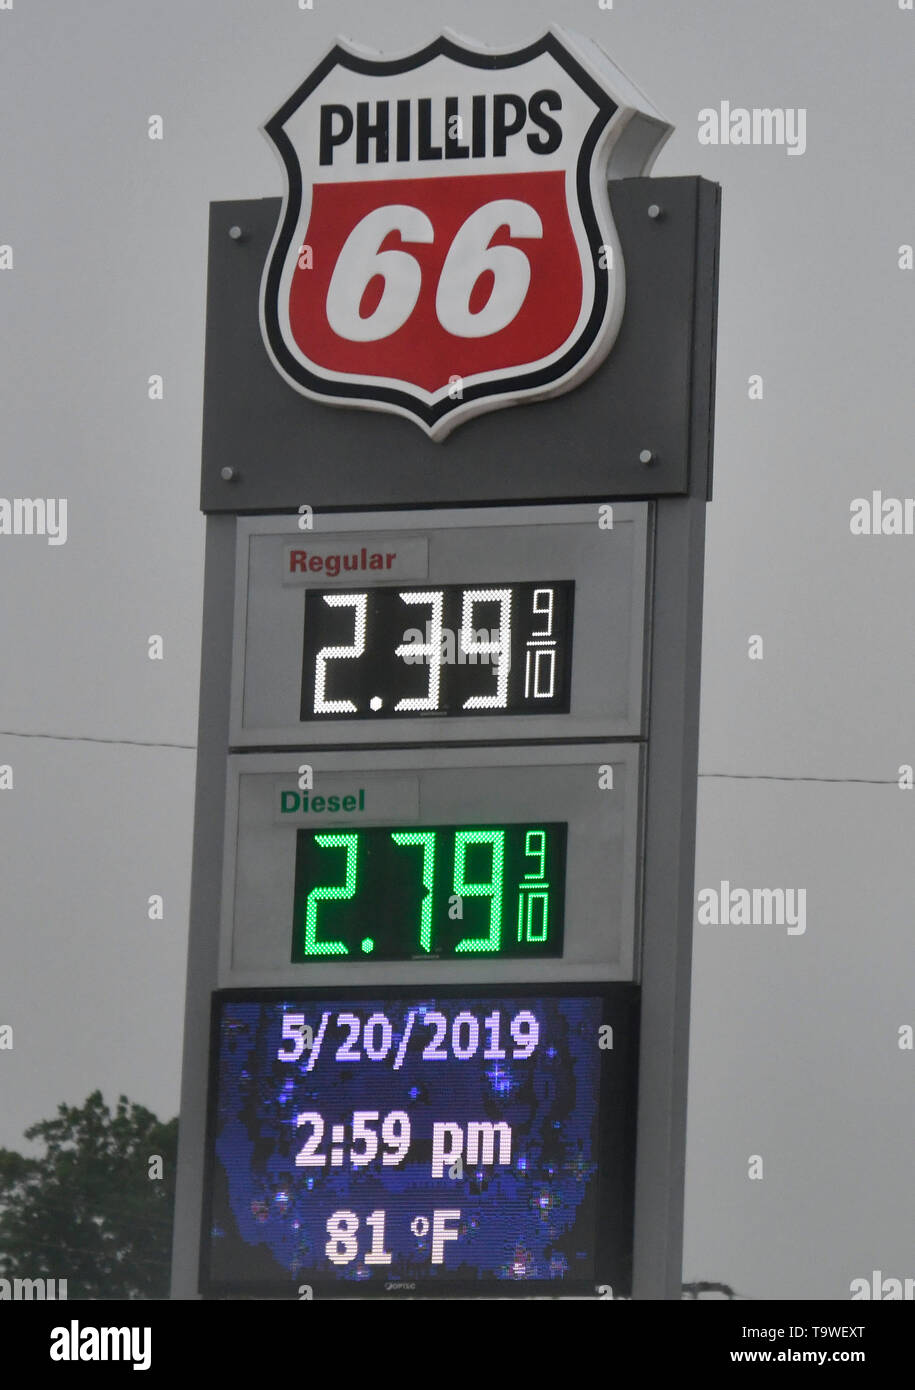 May 20, 2019: Oklahoma City, Oklahoma, U.S.: Storm chasers enjoy the cheap gas prices in TX and OK as severe storms, including tornadoes, are predicted in the Southern Plains through late Monday. Tornado watches in effect in the Texas Panhandle and Oklahoma expire before midnight. Then, flooding is expected to become the major concern overnight from Oklahoma City to Tulsa and to the northeast. The tornado outbreak has not been as severe as feared as twisters have mostly avoided population centers. Credit: Gene Blevins/ZUMA Wire/Alamy Live News - Stock Image